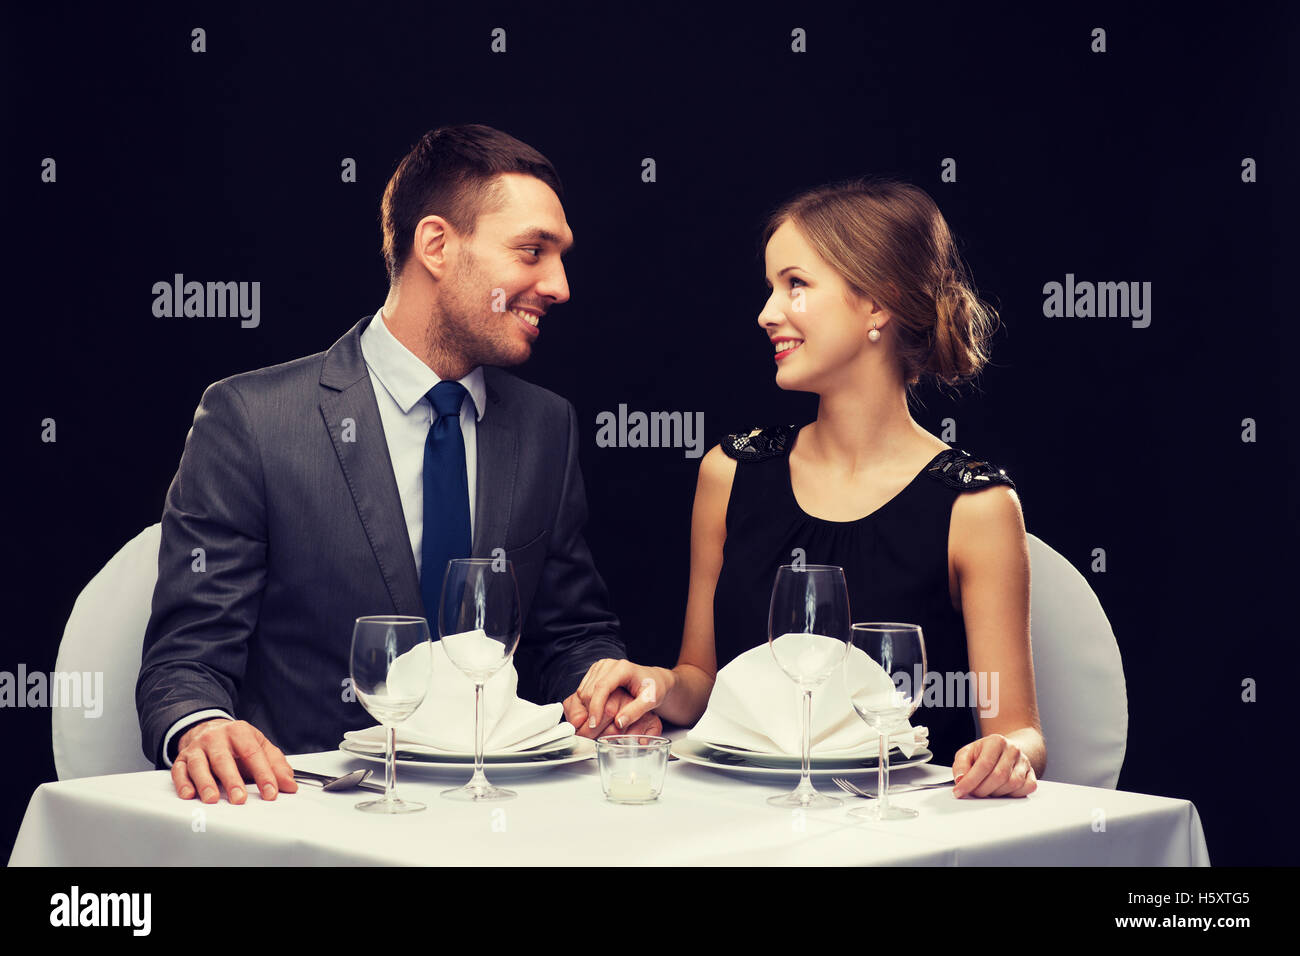 smiling couple looking at each other at restaurant - Stock Image